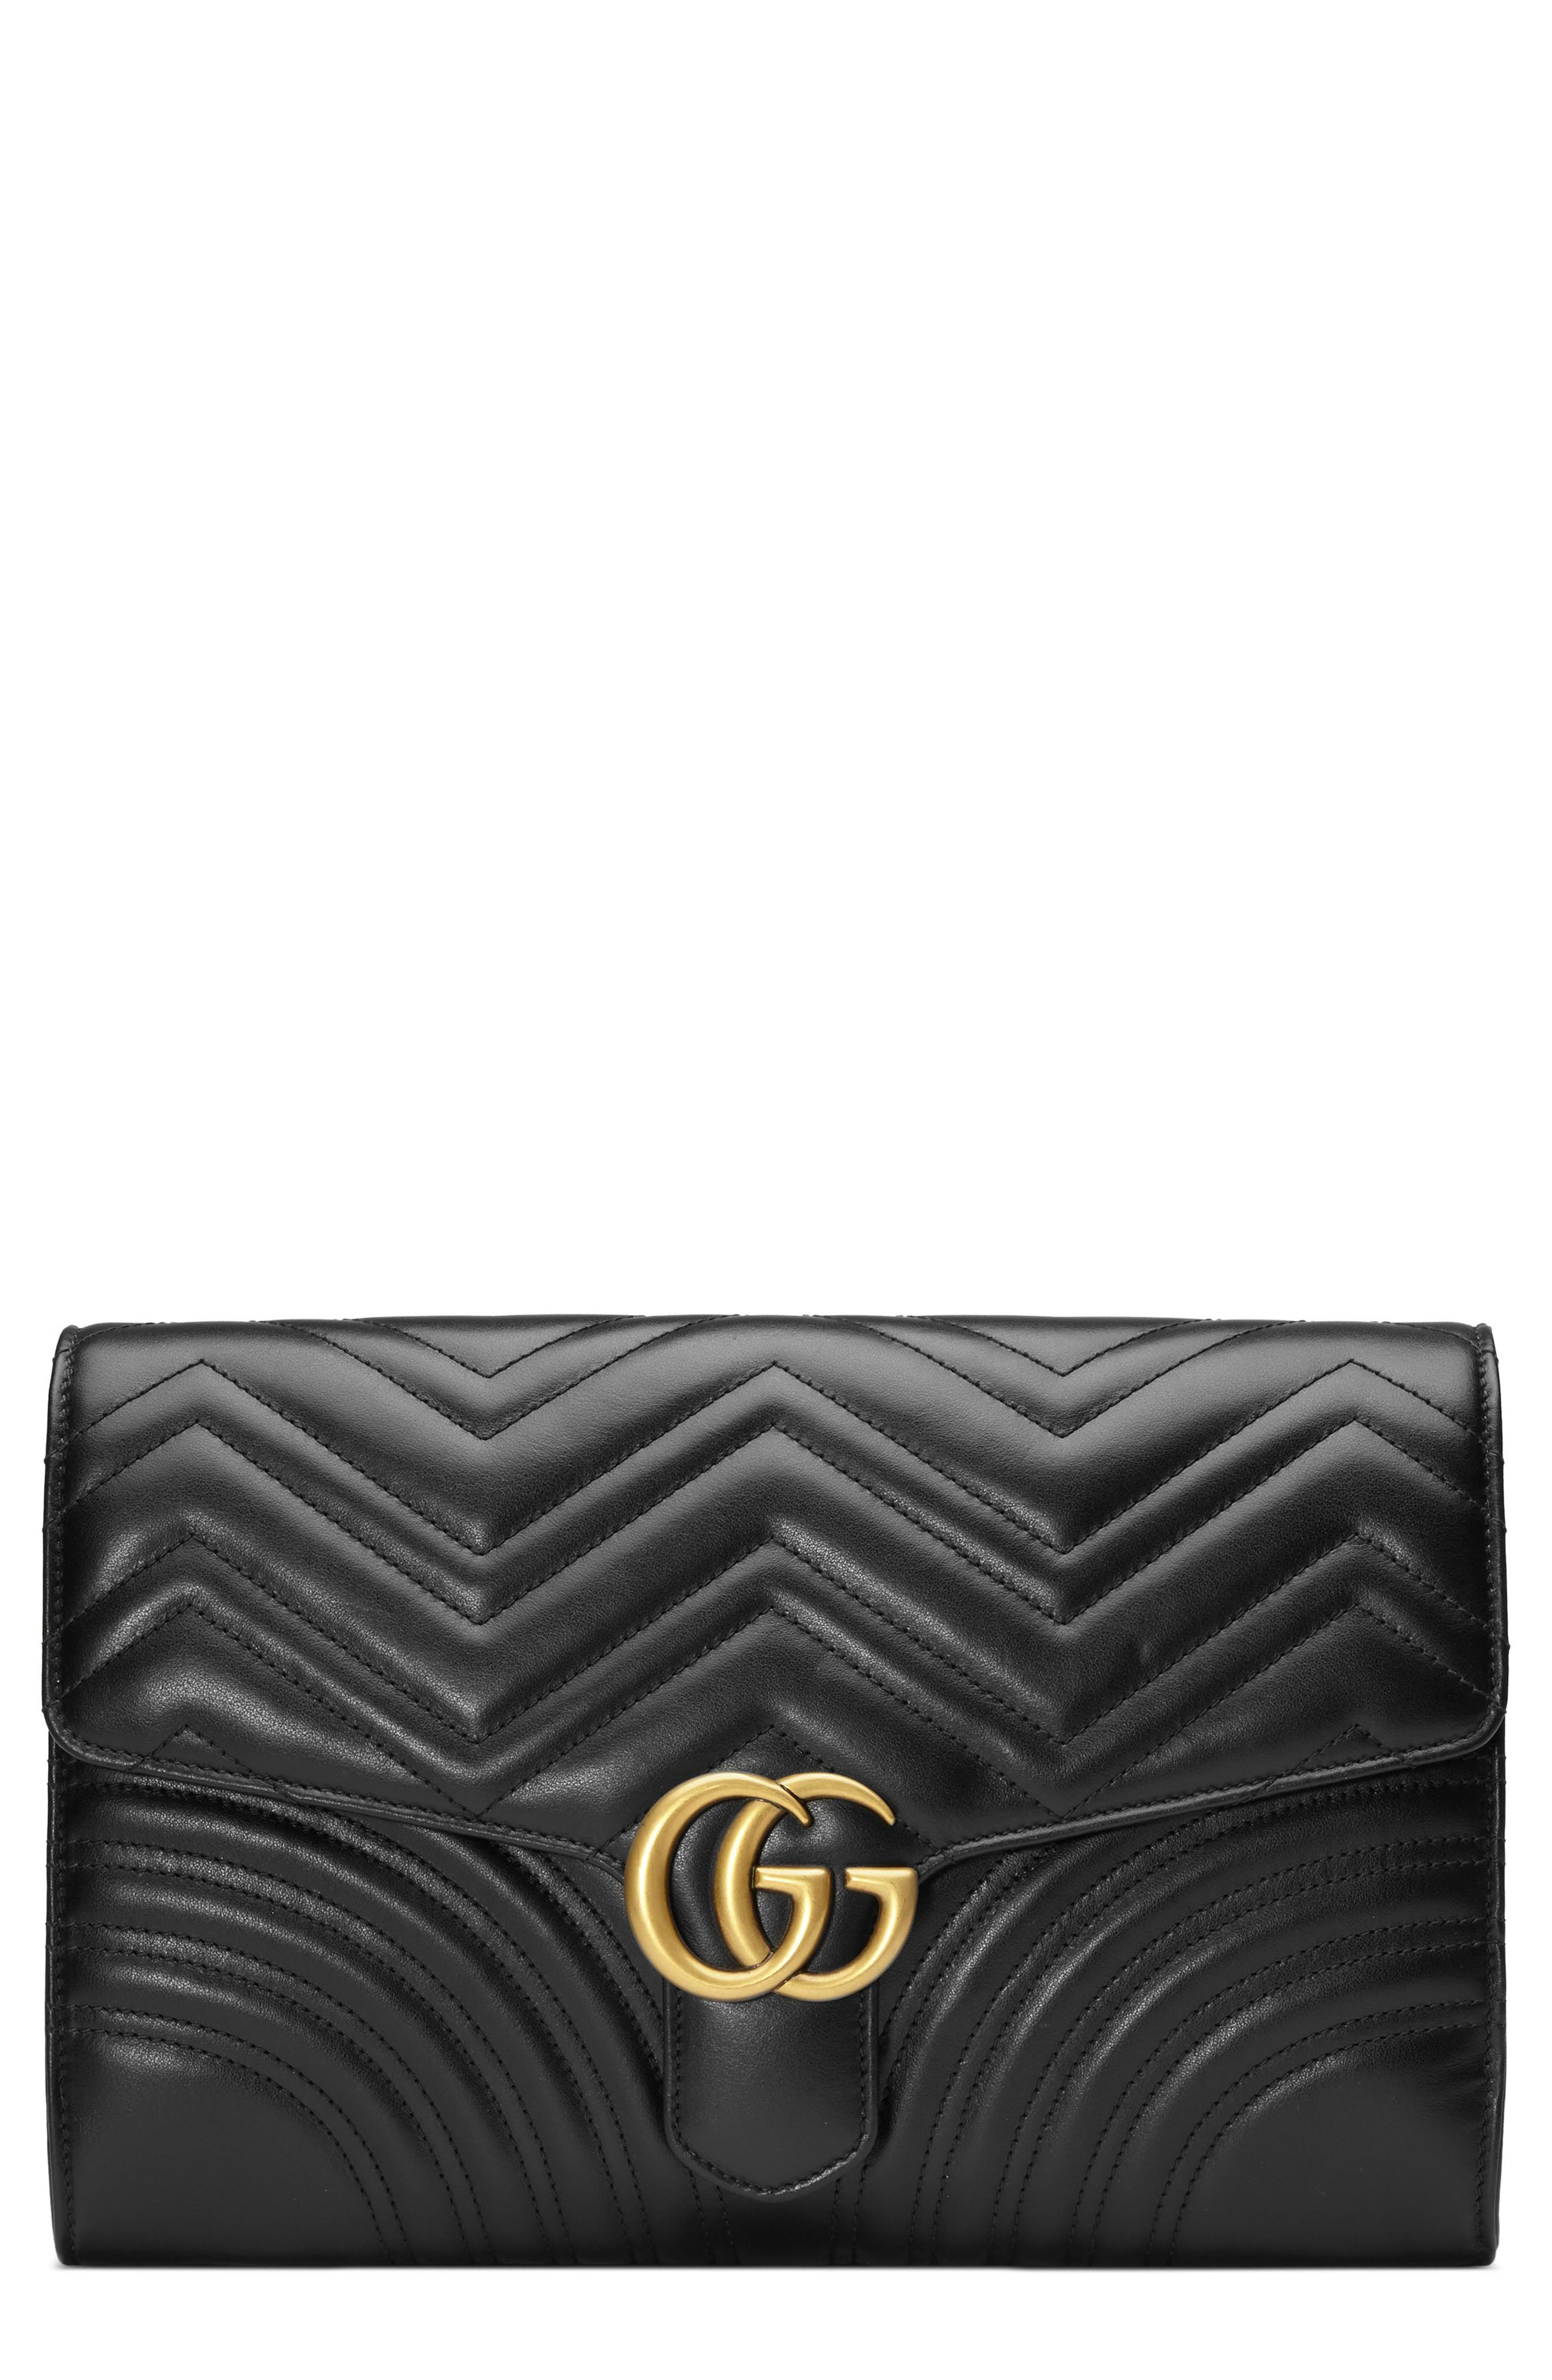 GG Marmont 2.0 Matelassé Leather Clutch,                             Main thumbnail 1, color,                             005